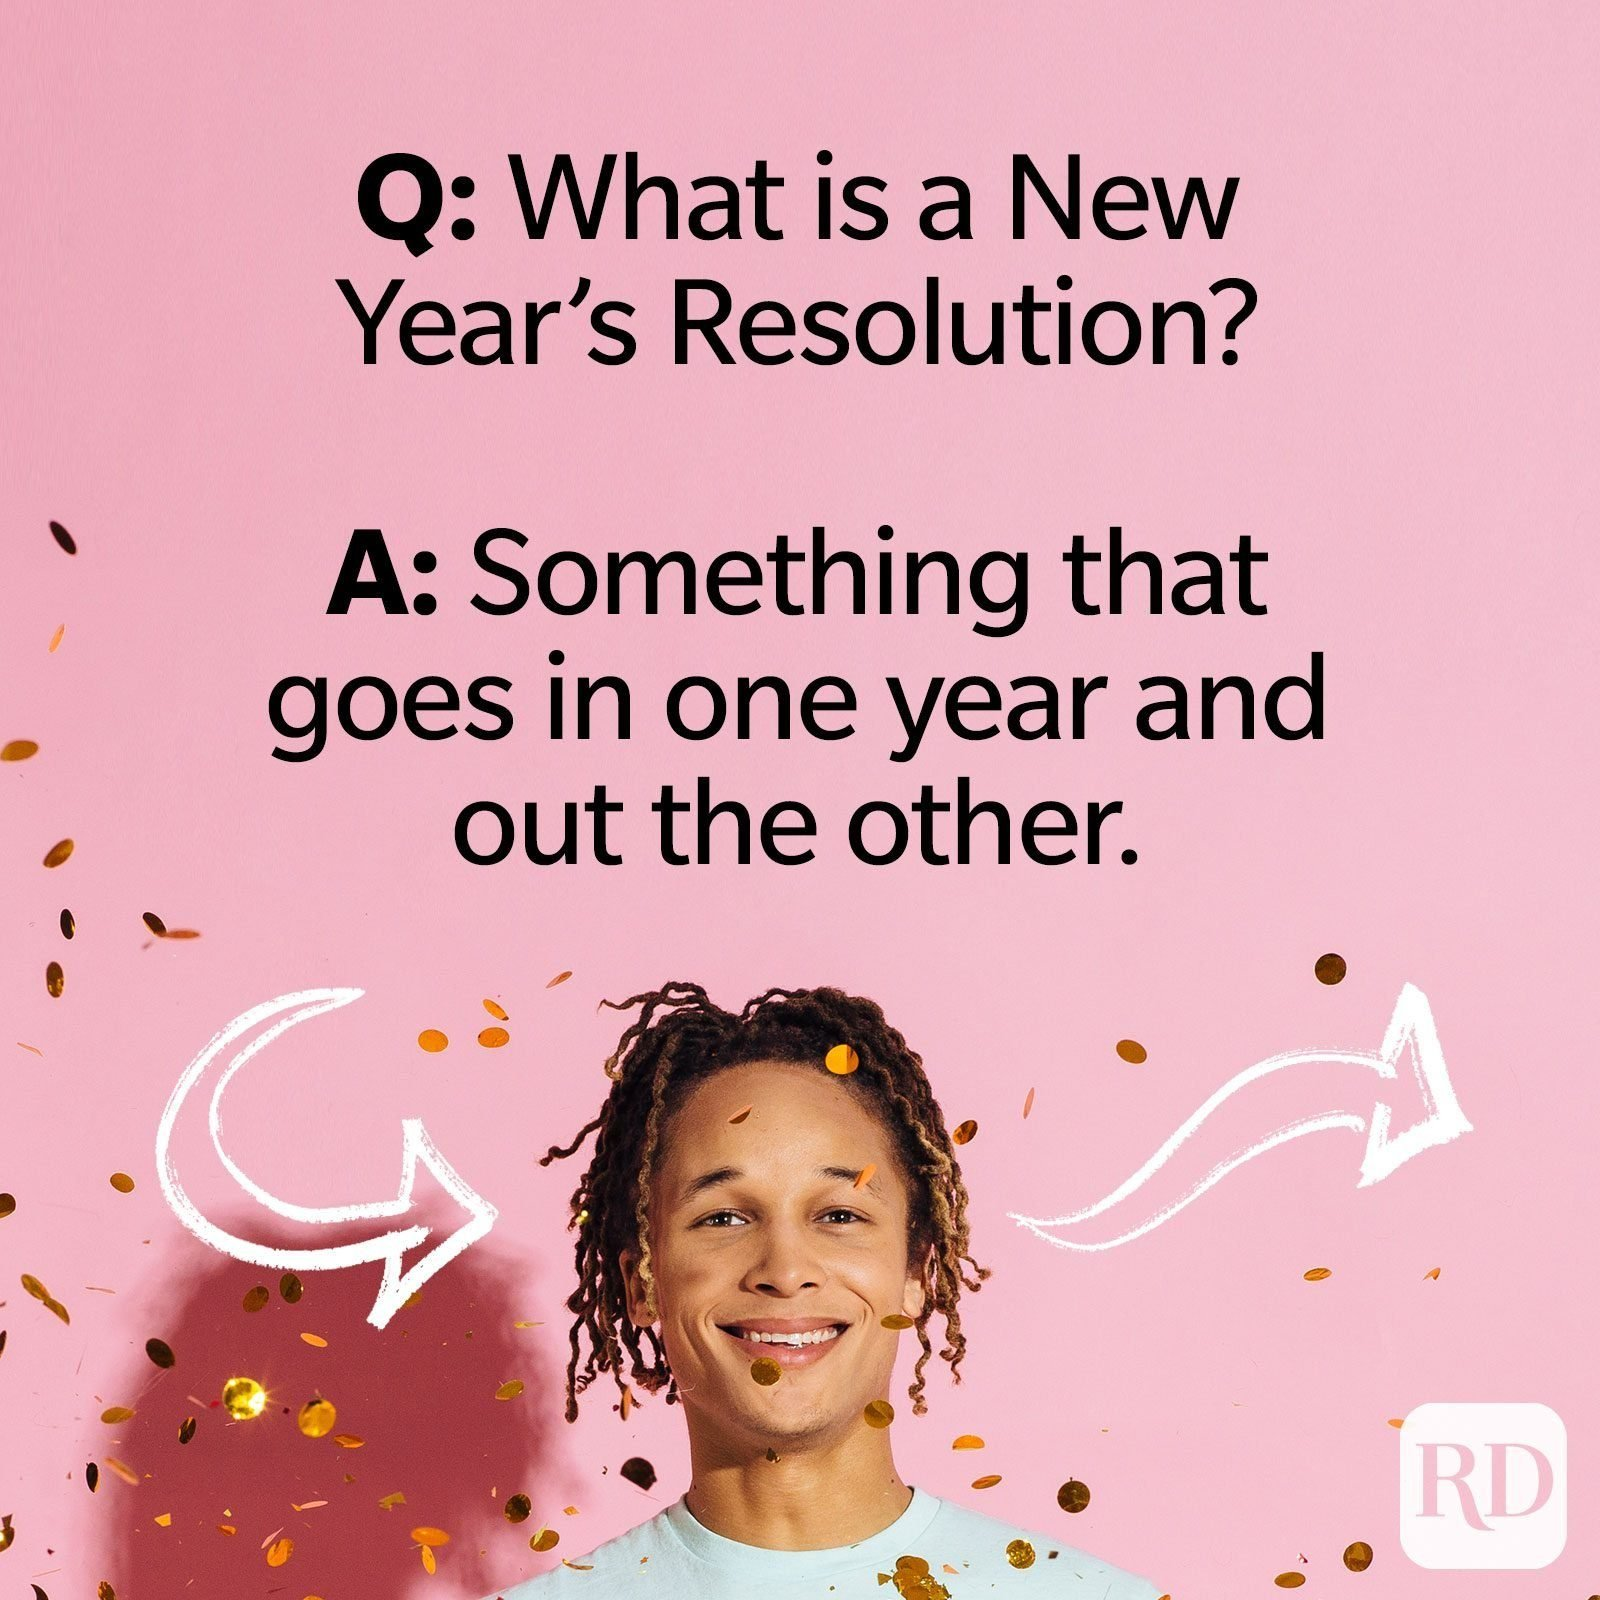 Q: What is a New Year's resolution? A: Something that goes in one year and out the other.